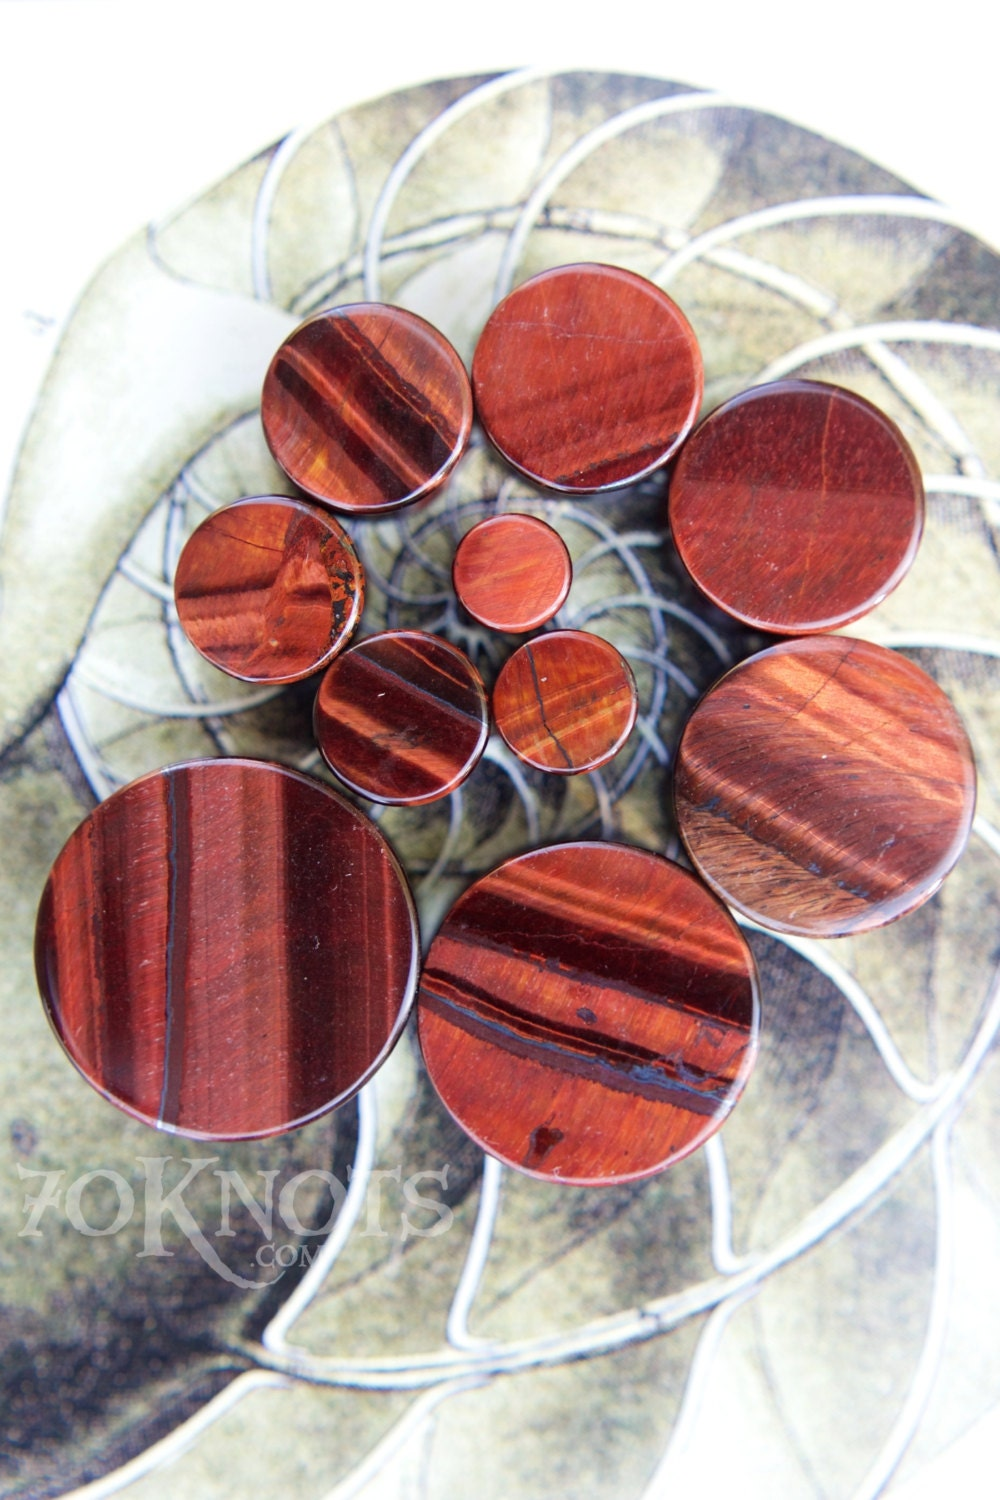 Red Tigers Eye Stone Red Tiger's Eye Stone ...